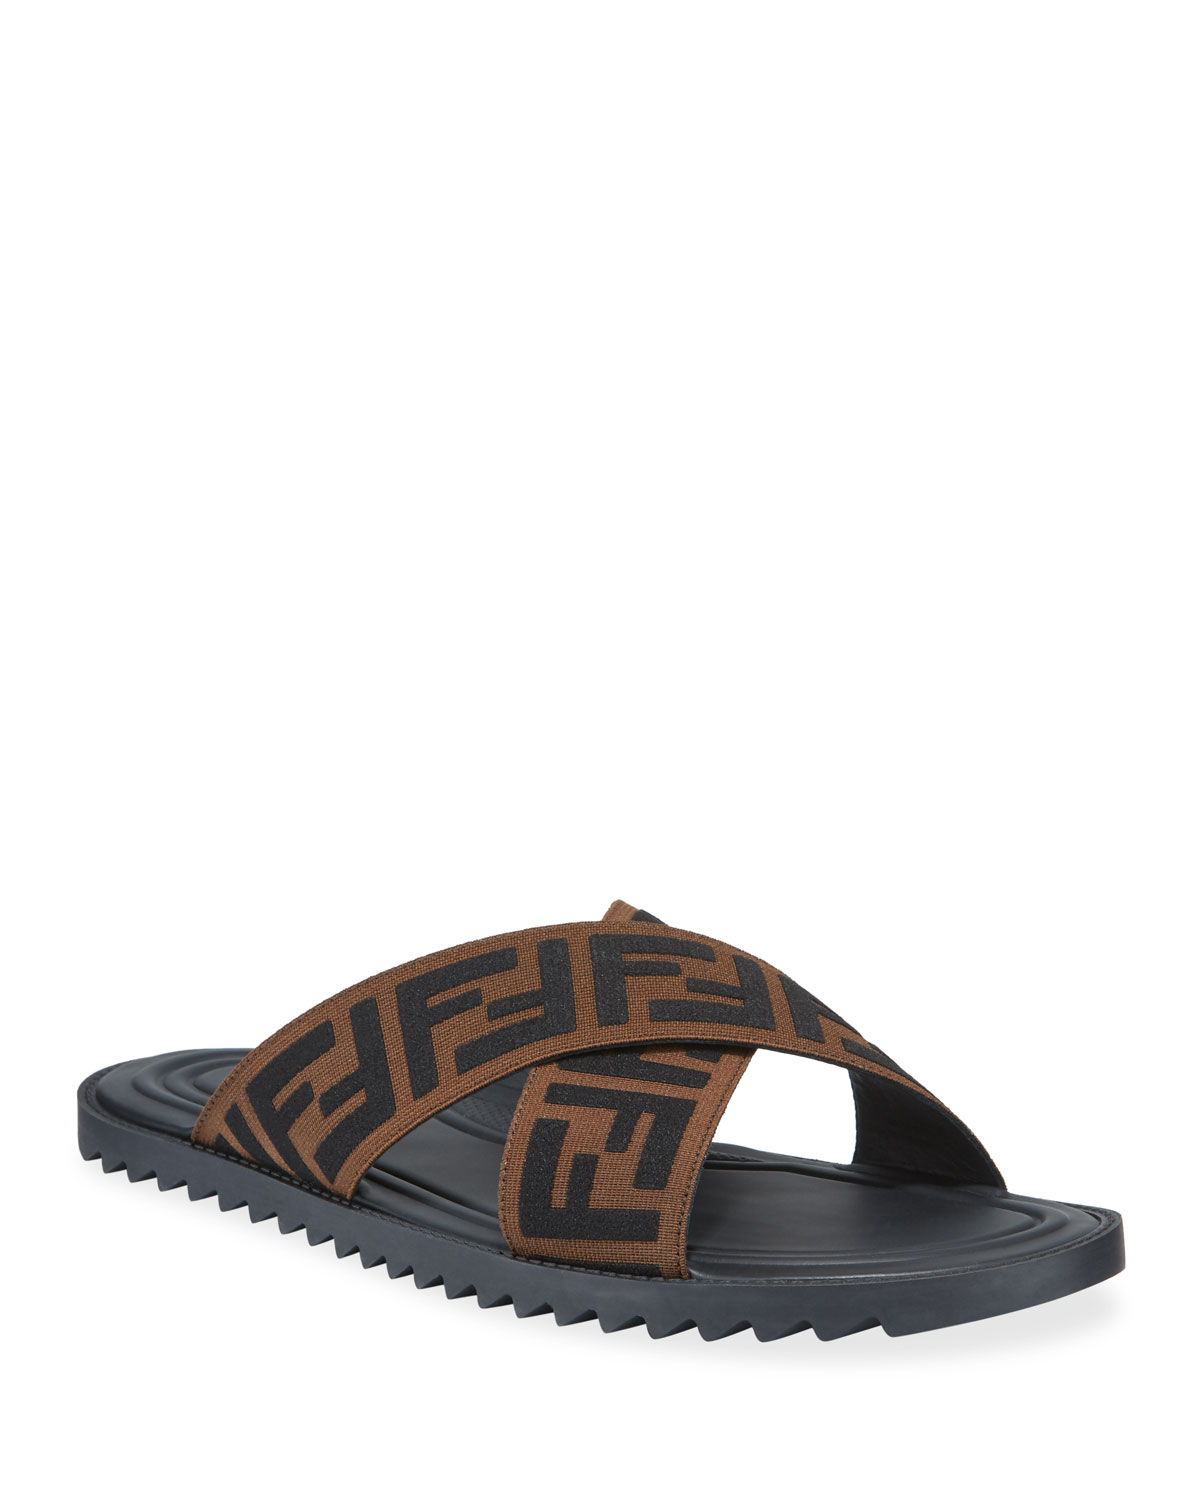 ad9adf87e667 Fendi Men s FF Band Slide Sandals